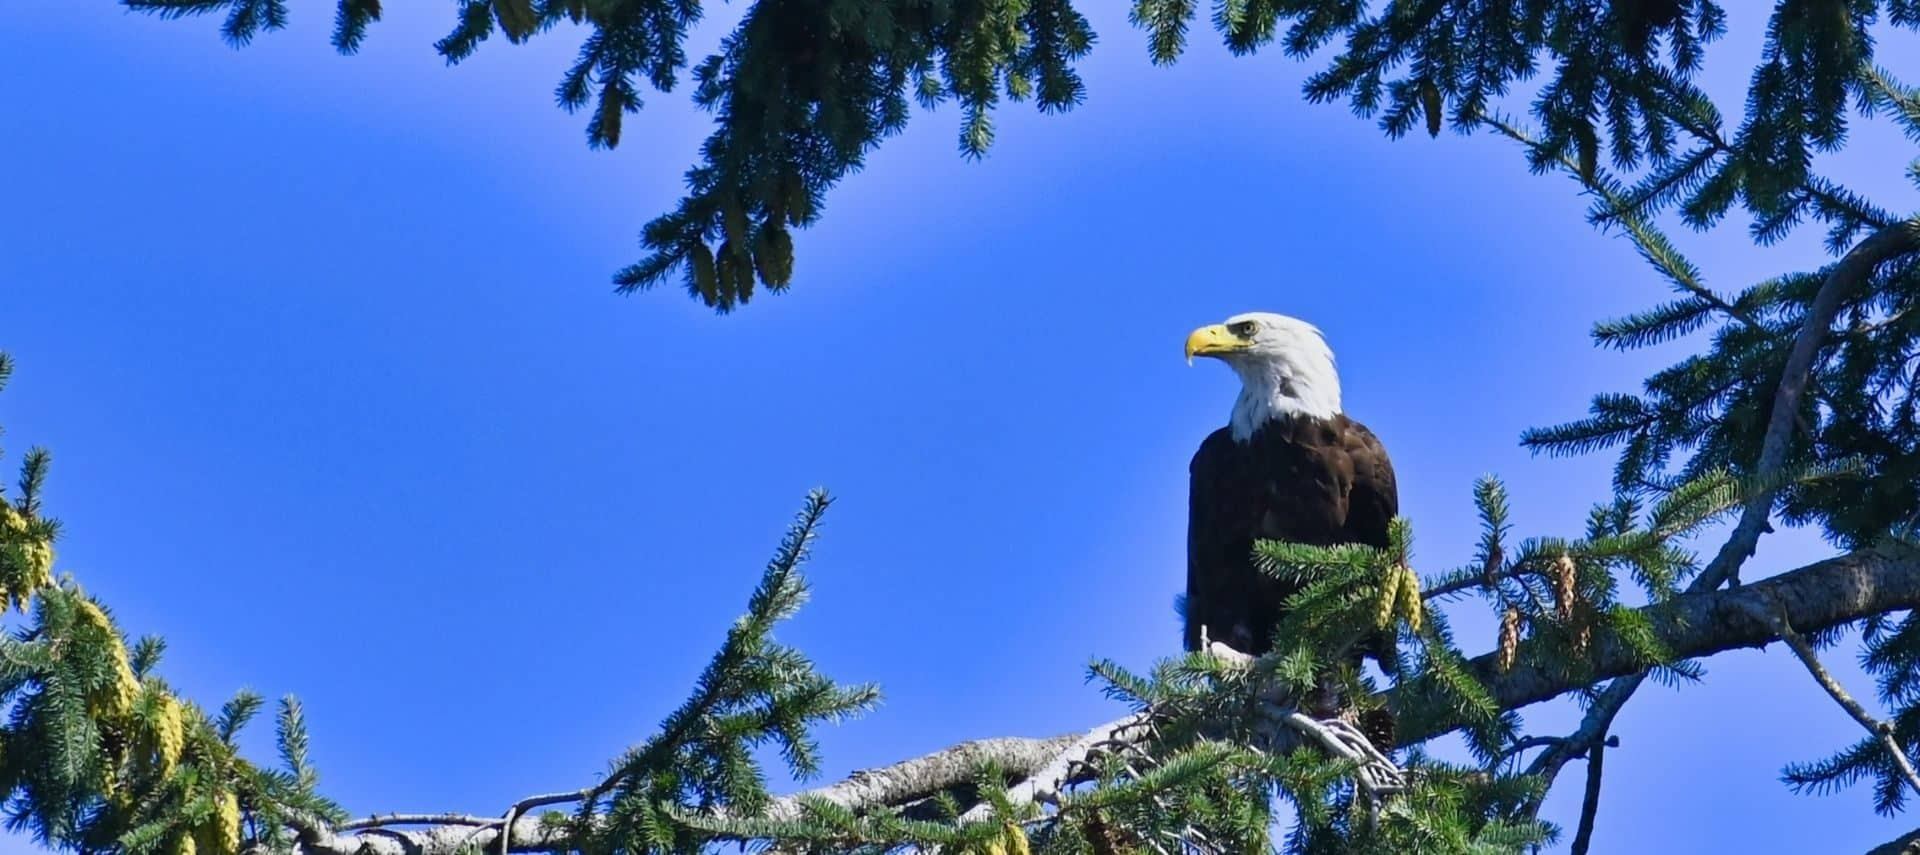 Beautiful bald eagle perched on a tree limb against a brilliant blue sky